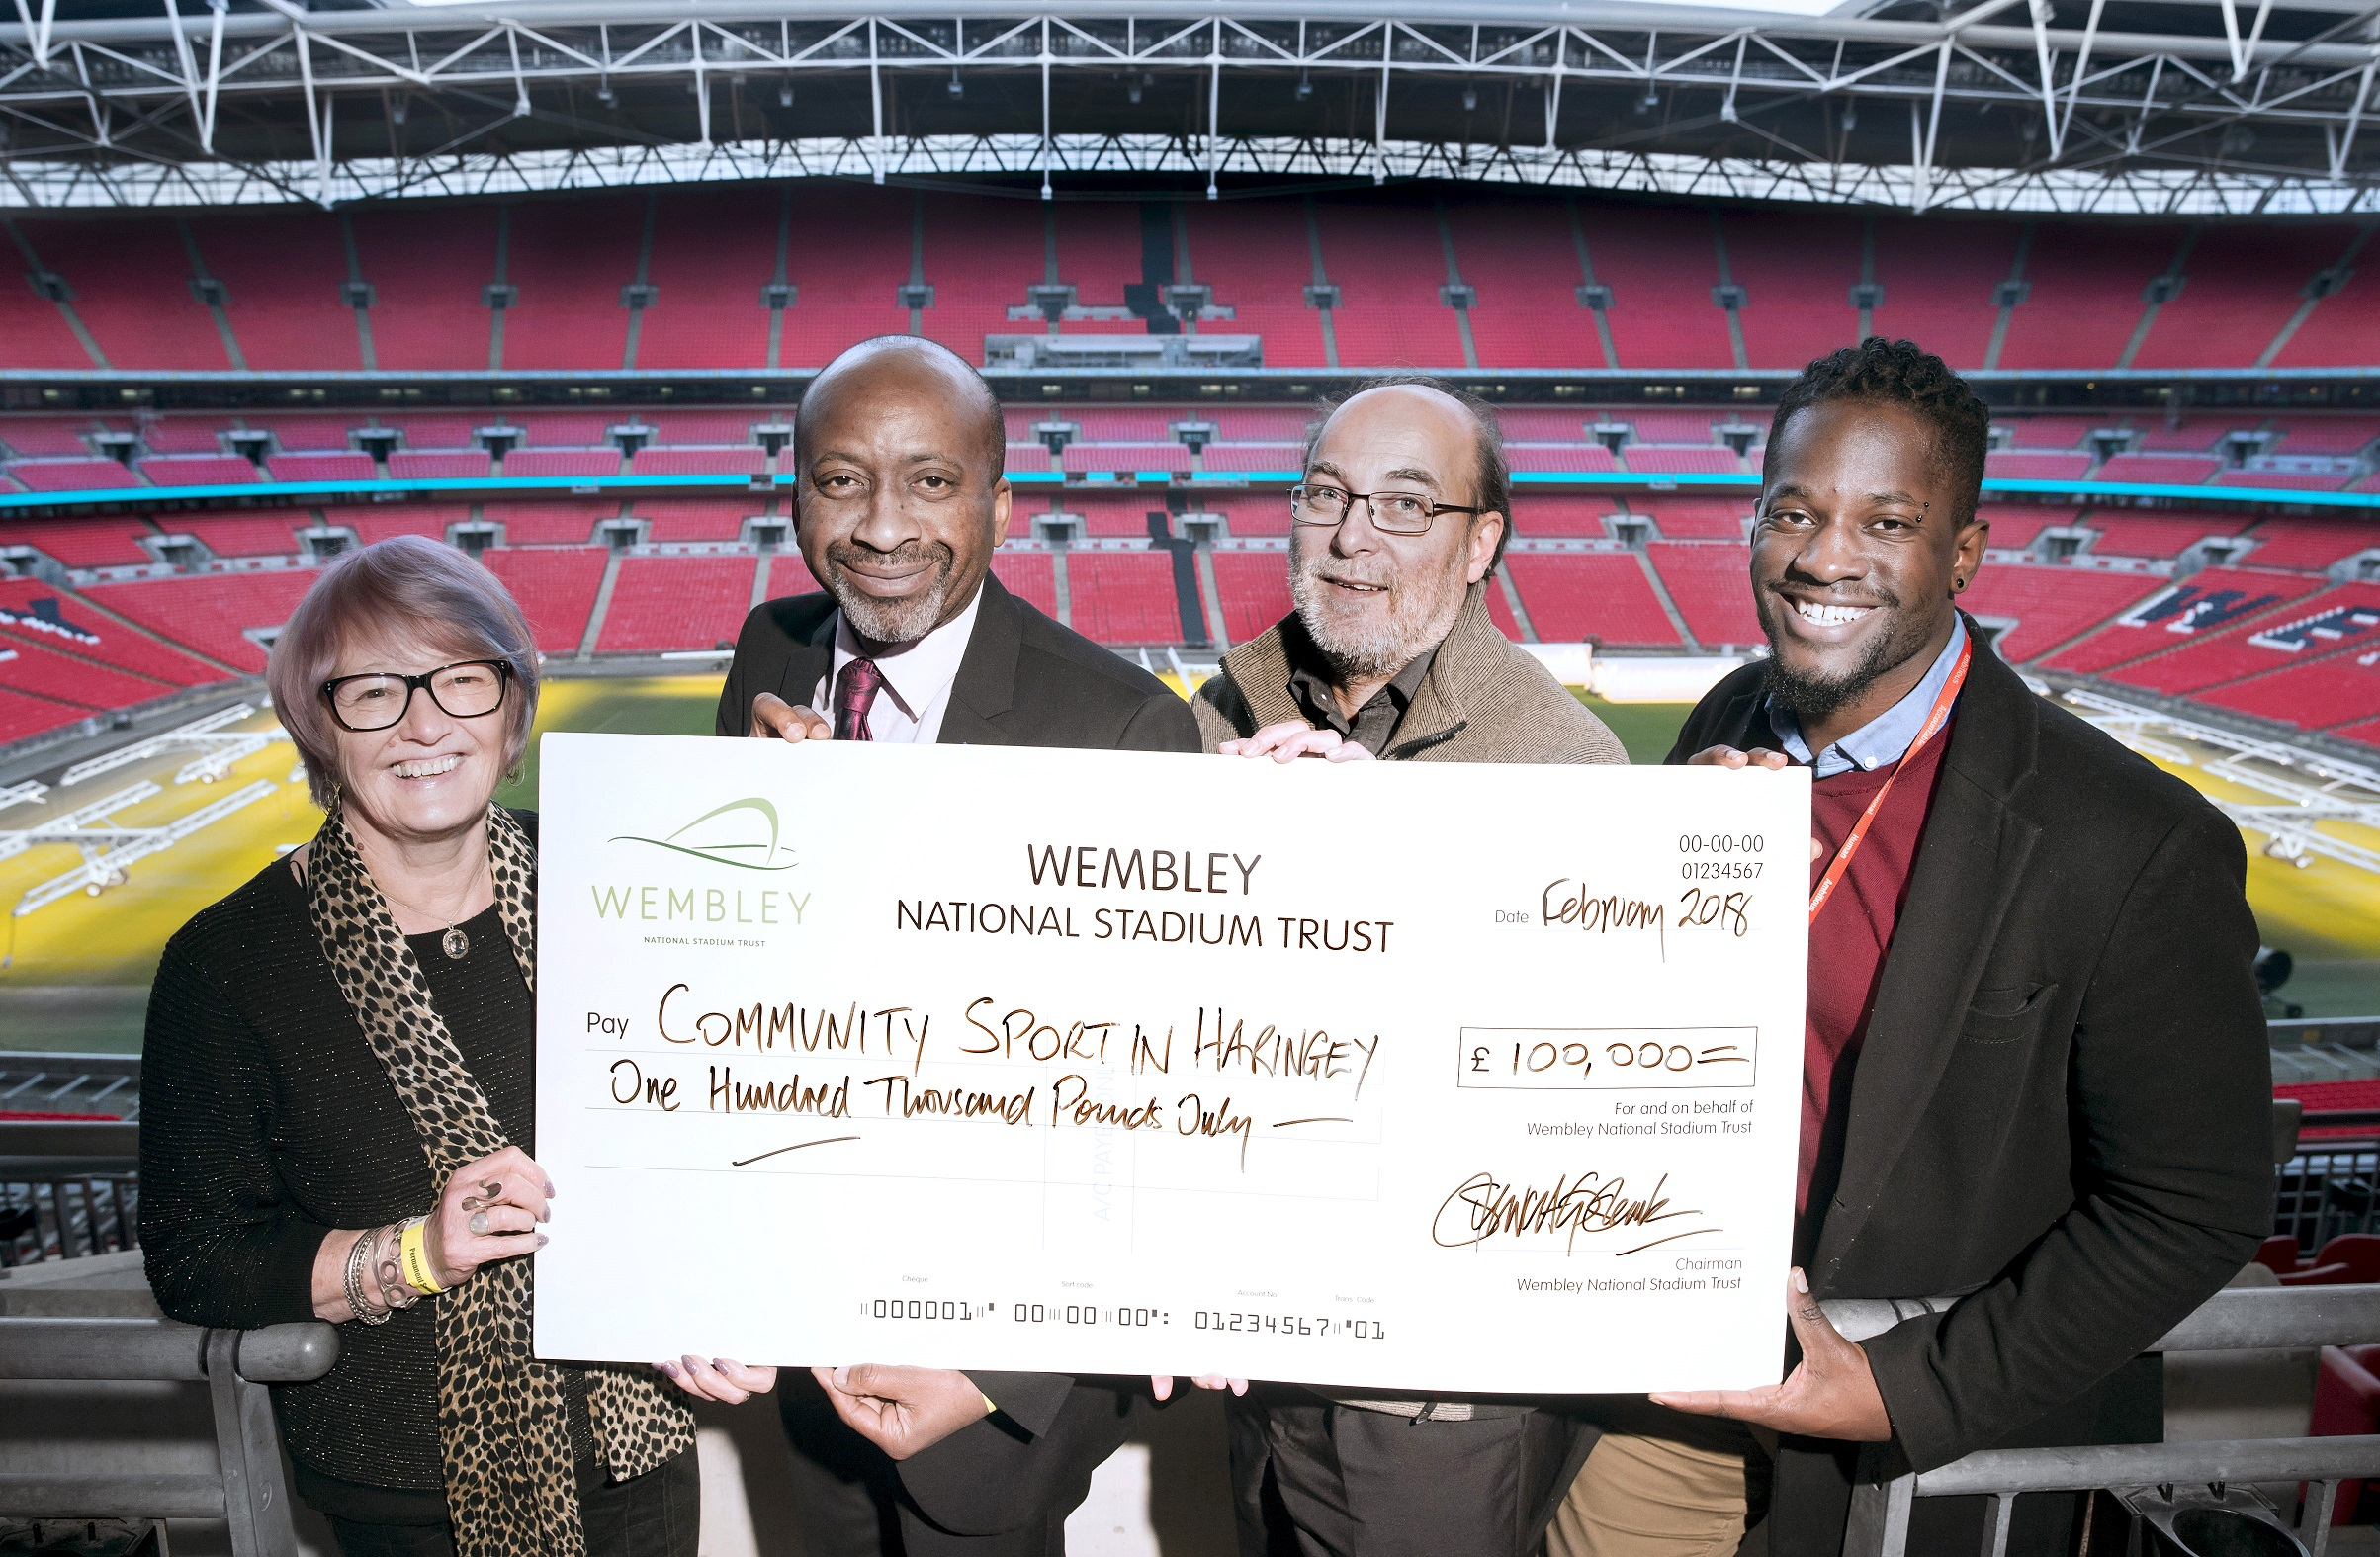 Ann John OBE - Wembley Stadium National Trust Trustee, Cllr Joseph Ejiofor, Stewart Goshawk - CEO of Wembley National Stadium Trust, Neville Graham- Haringey Council Interim Leisure Client Contract Manager